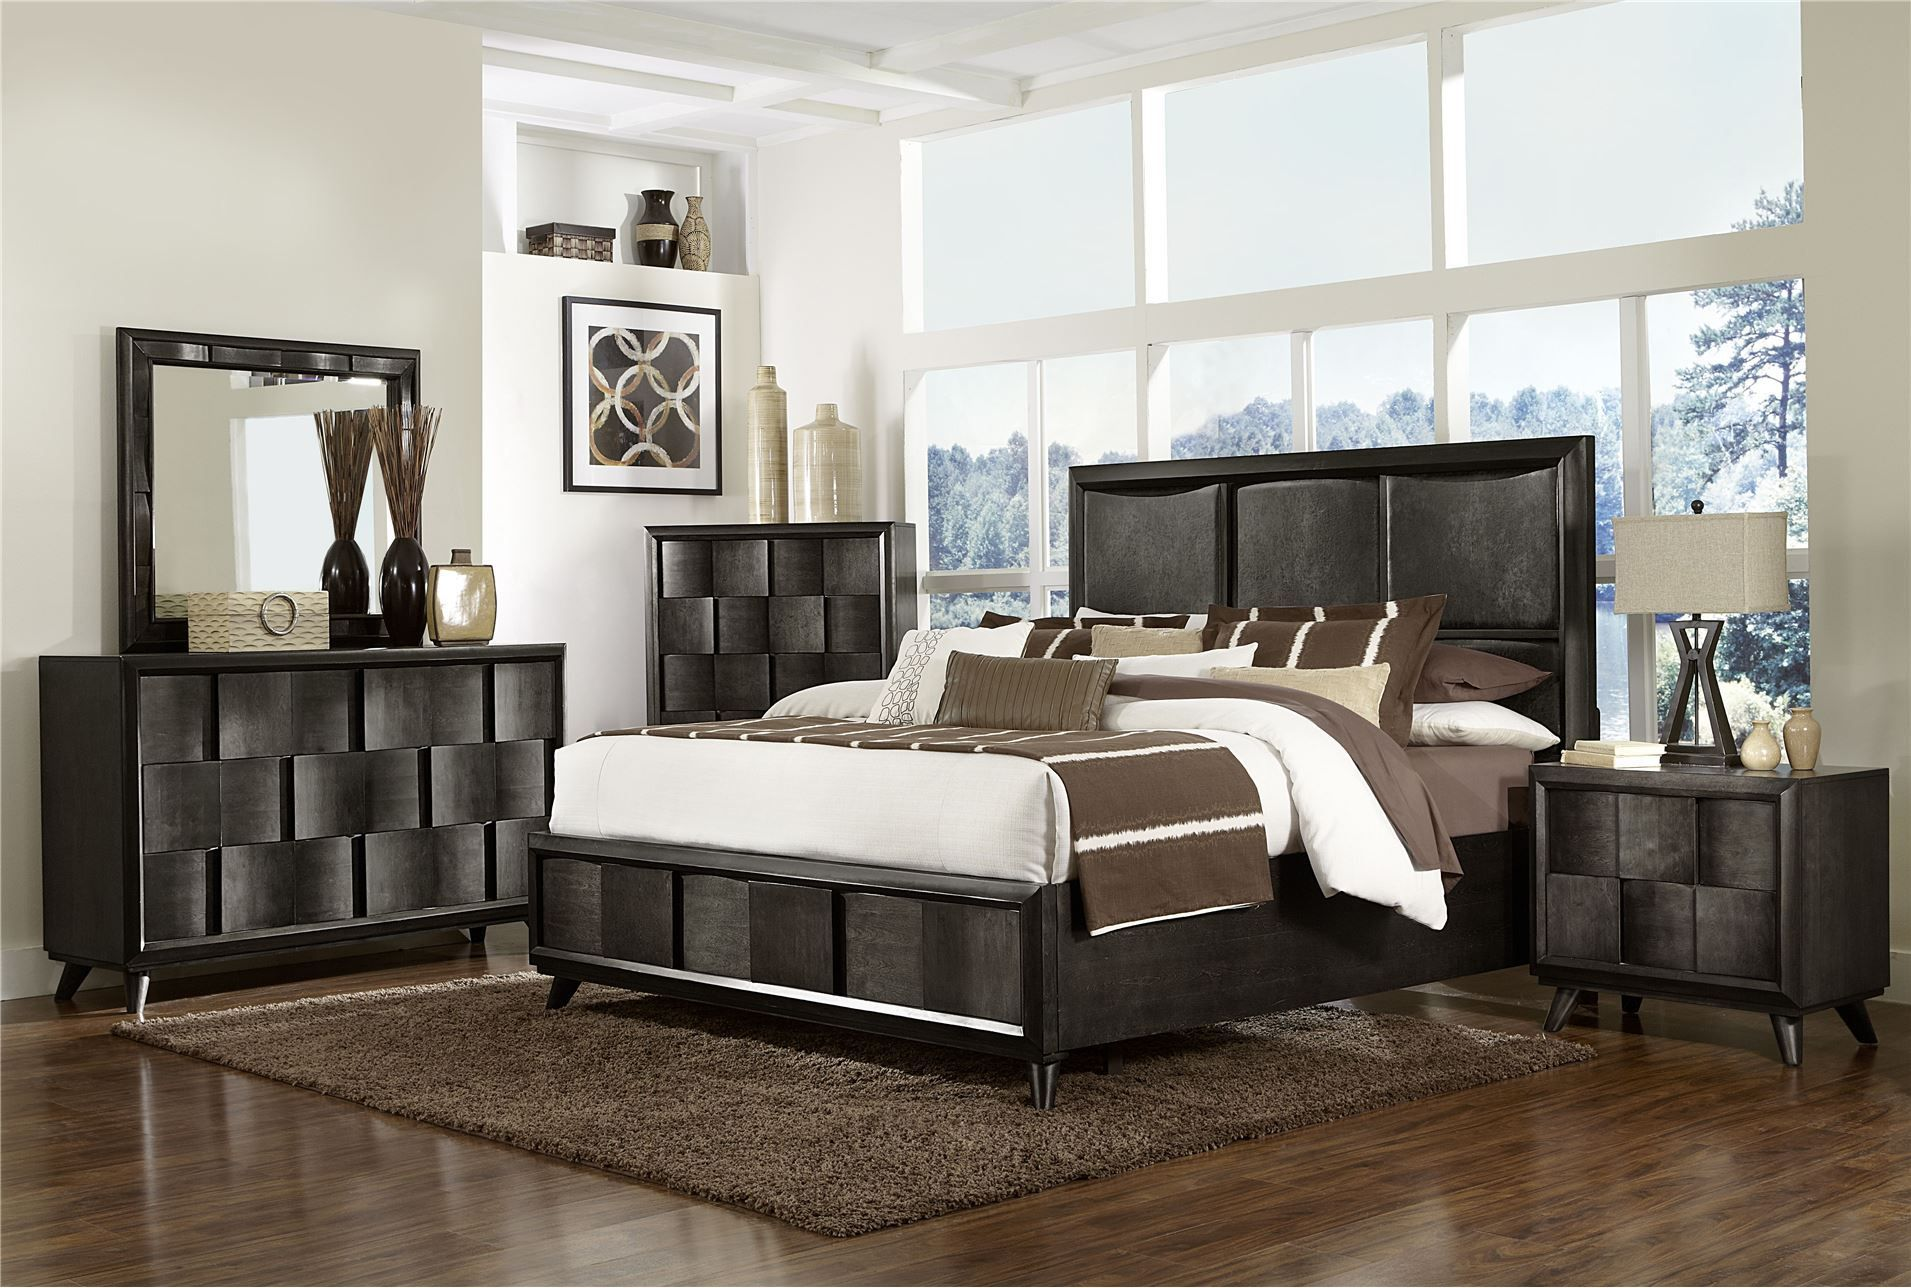 Harlowe queen platform bed ideas for the house pinterest